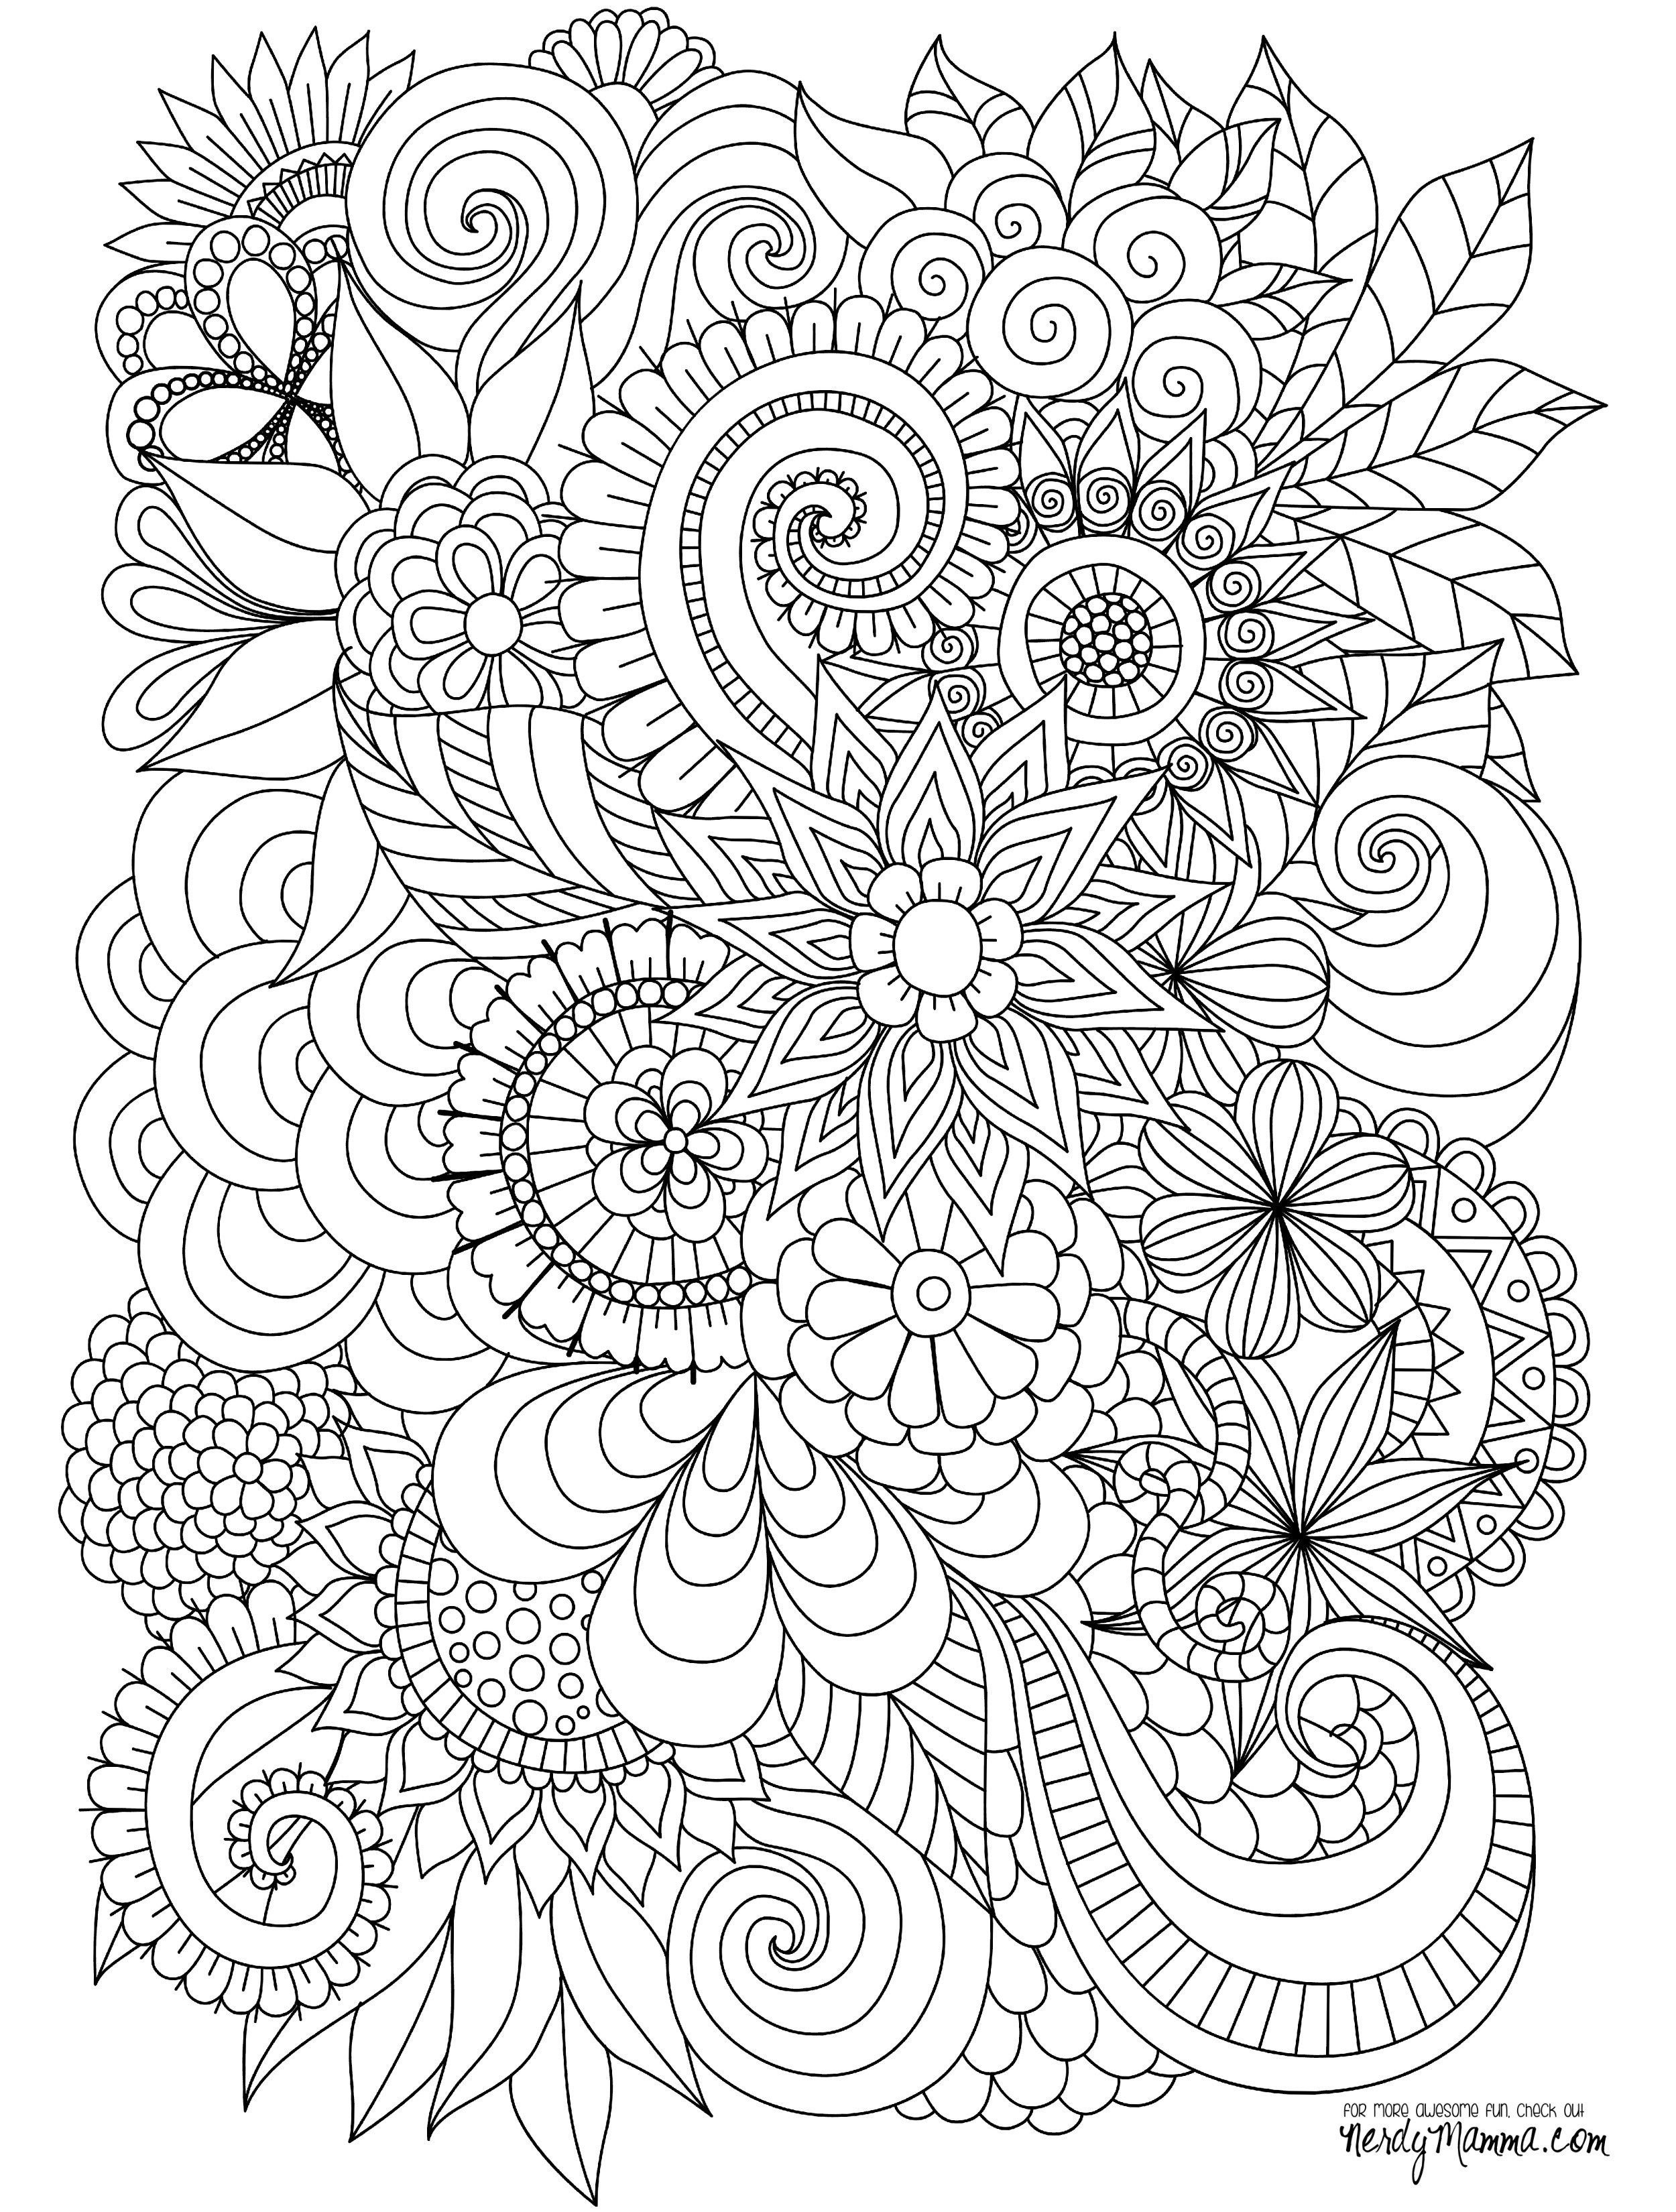 Flowers Abstract Coloring Pages Colouring Adult Detailed Advanced - Free Printable Flower Coloring Pages For Adults